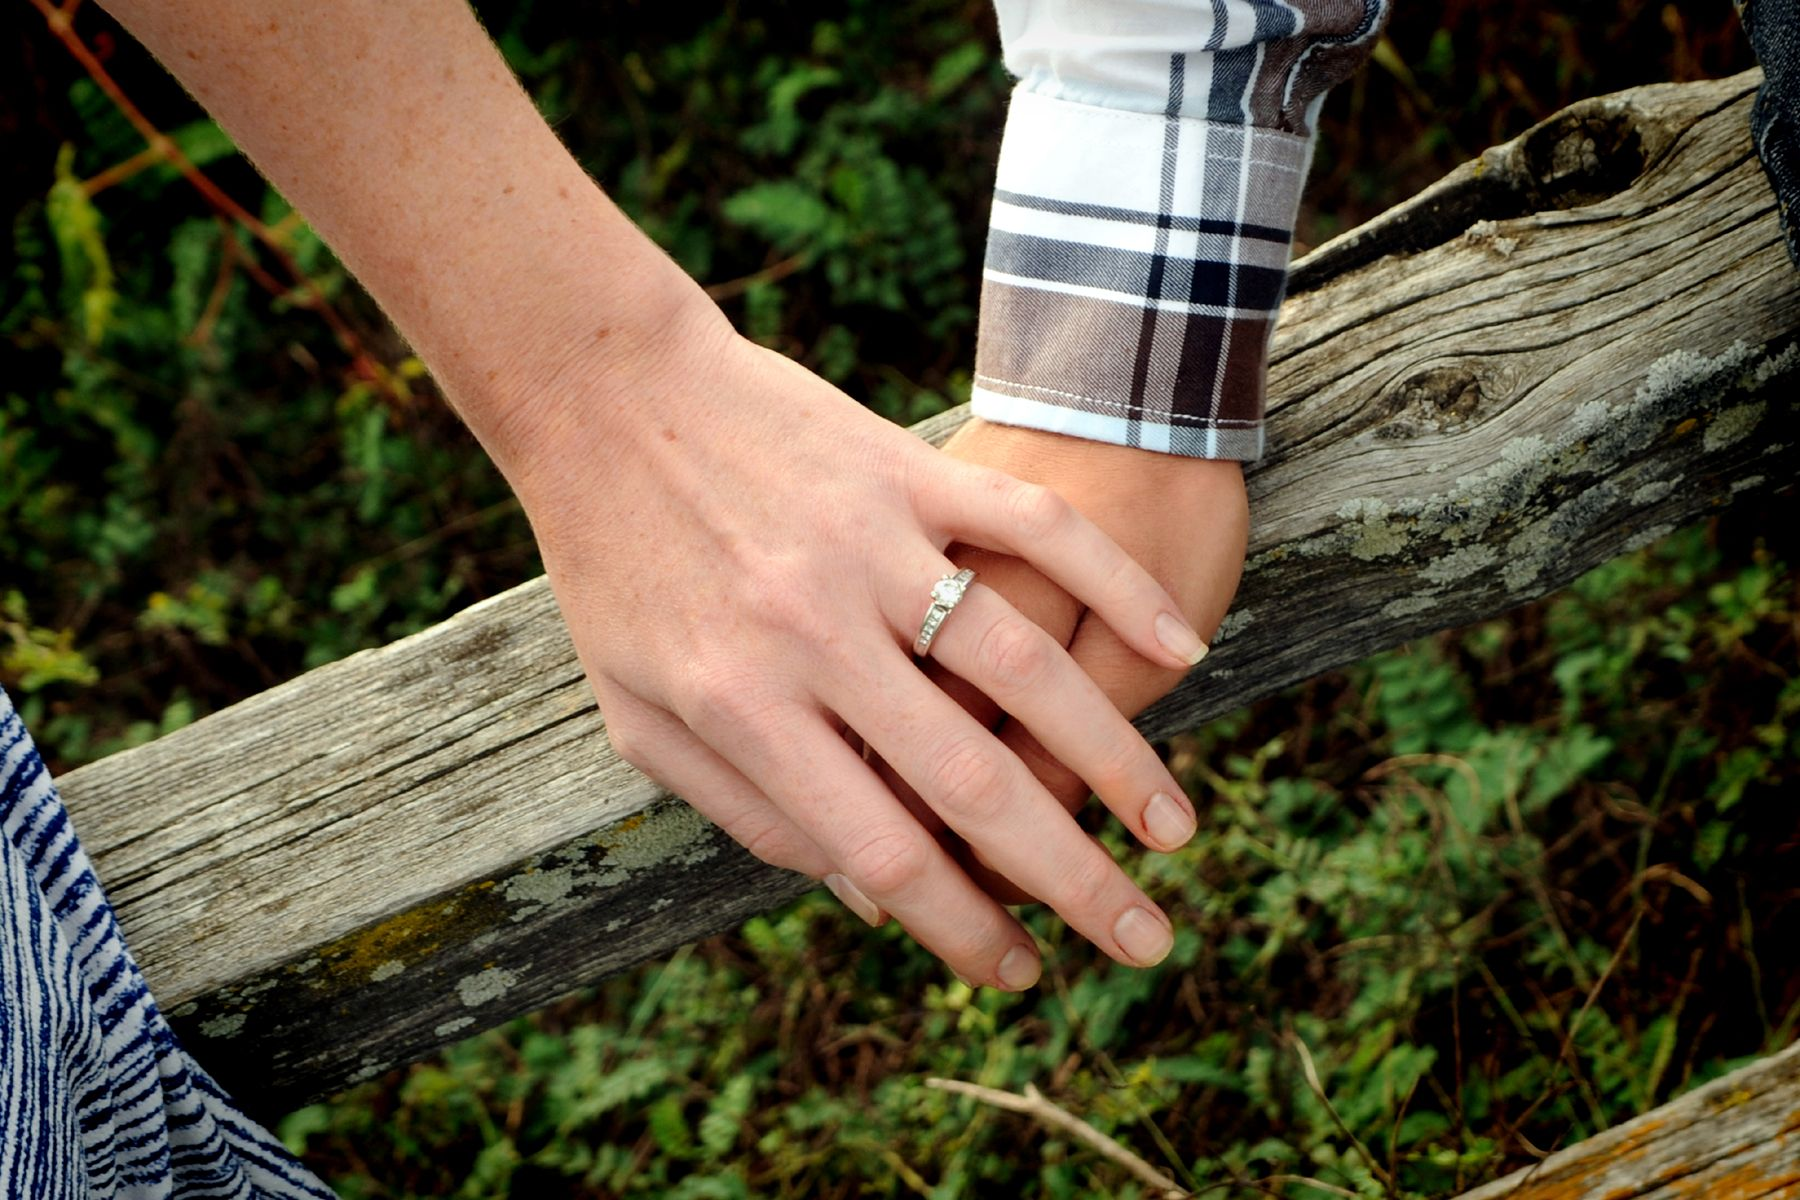 He put a ring on her finger wedding engagement photos